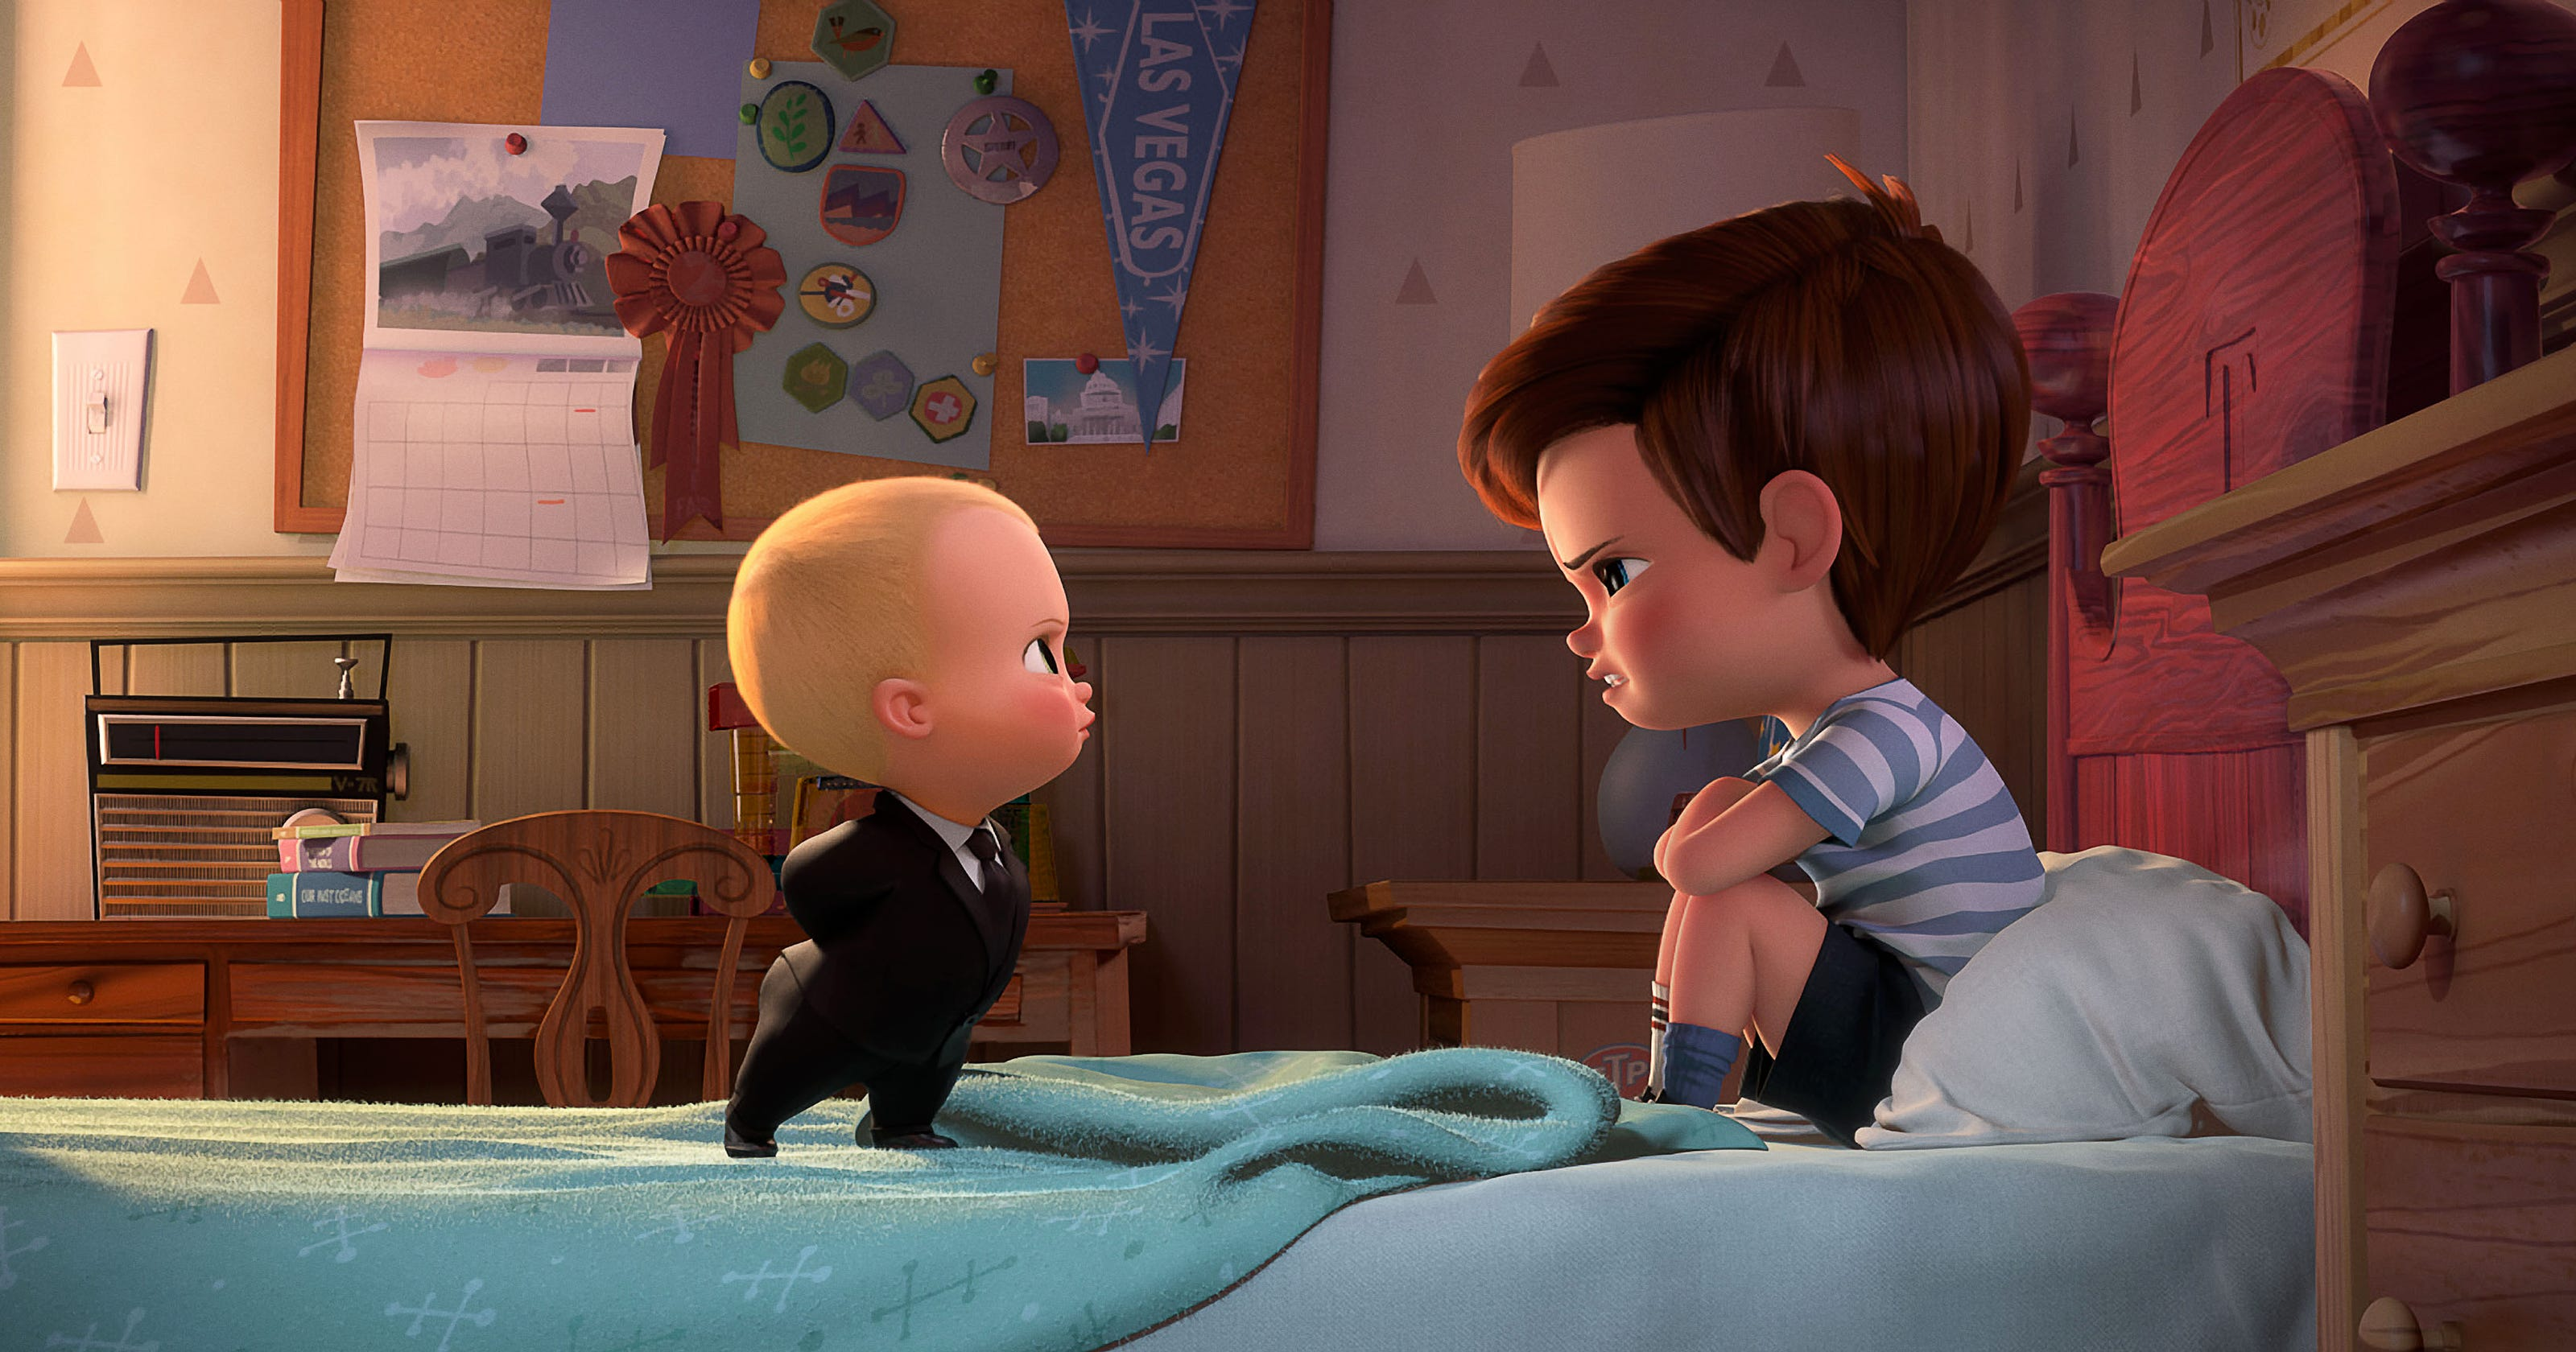 24a4e2eff31d97 Sneak peek: Alec Baldwin is 'The Boss Baby'